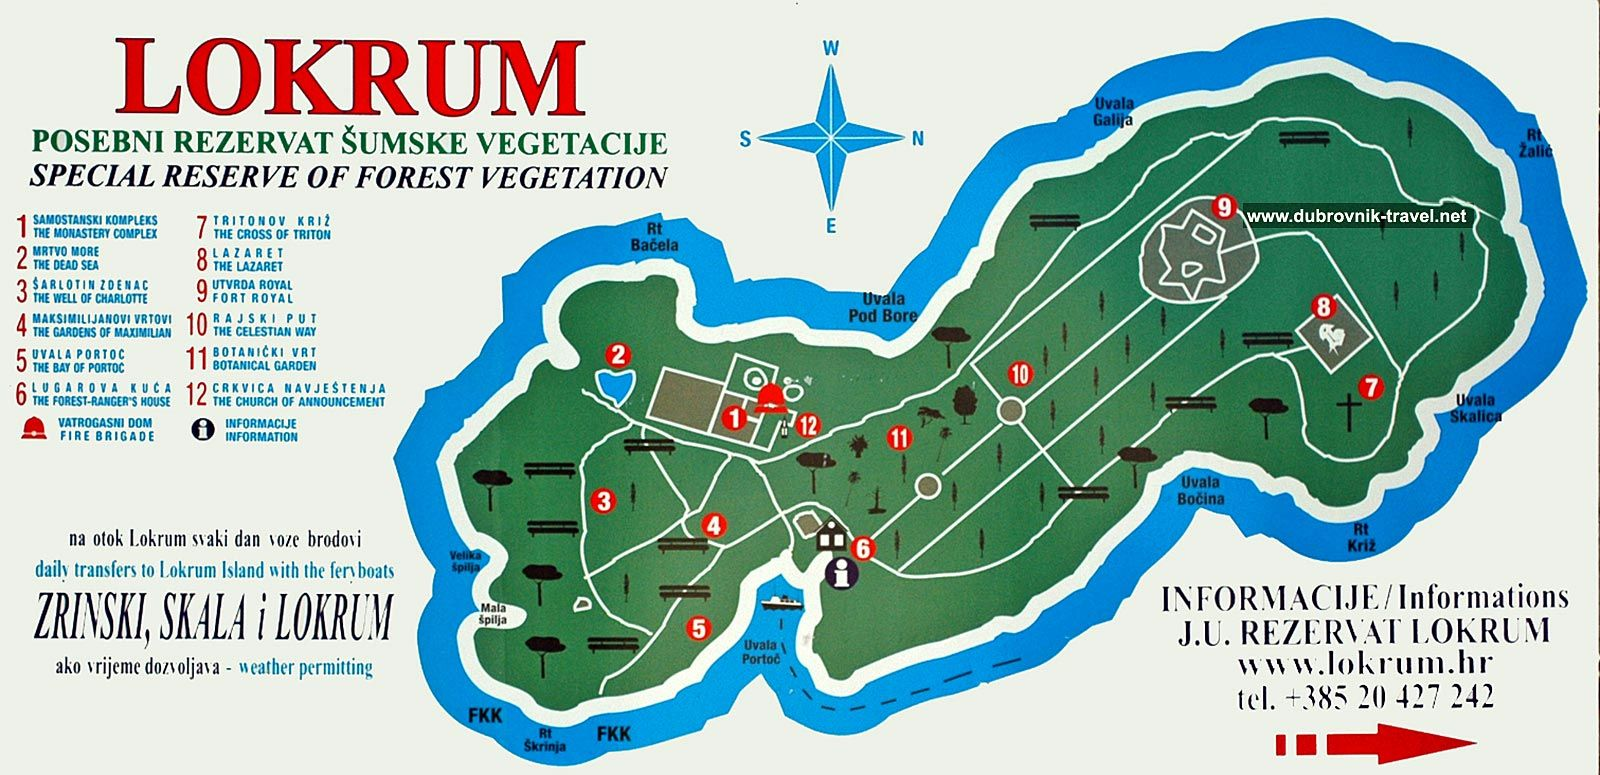 Map Of Lokrum Small Island In Vicinity Of Dubrovnik Http Www Dubrovnik Travel Net Lokrum Island Lokrum Map1 Lokrum Island Croatian Islands Croatia Tourism